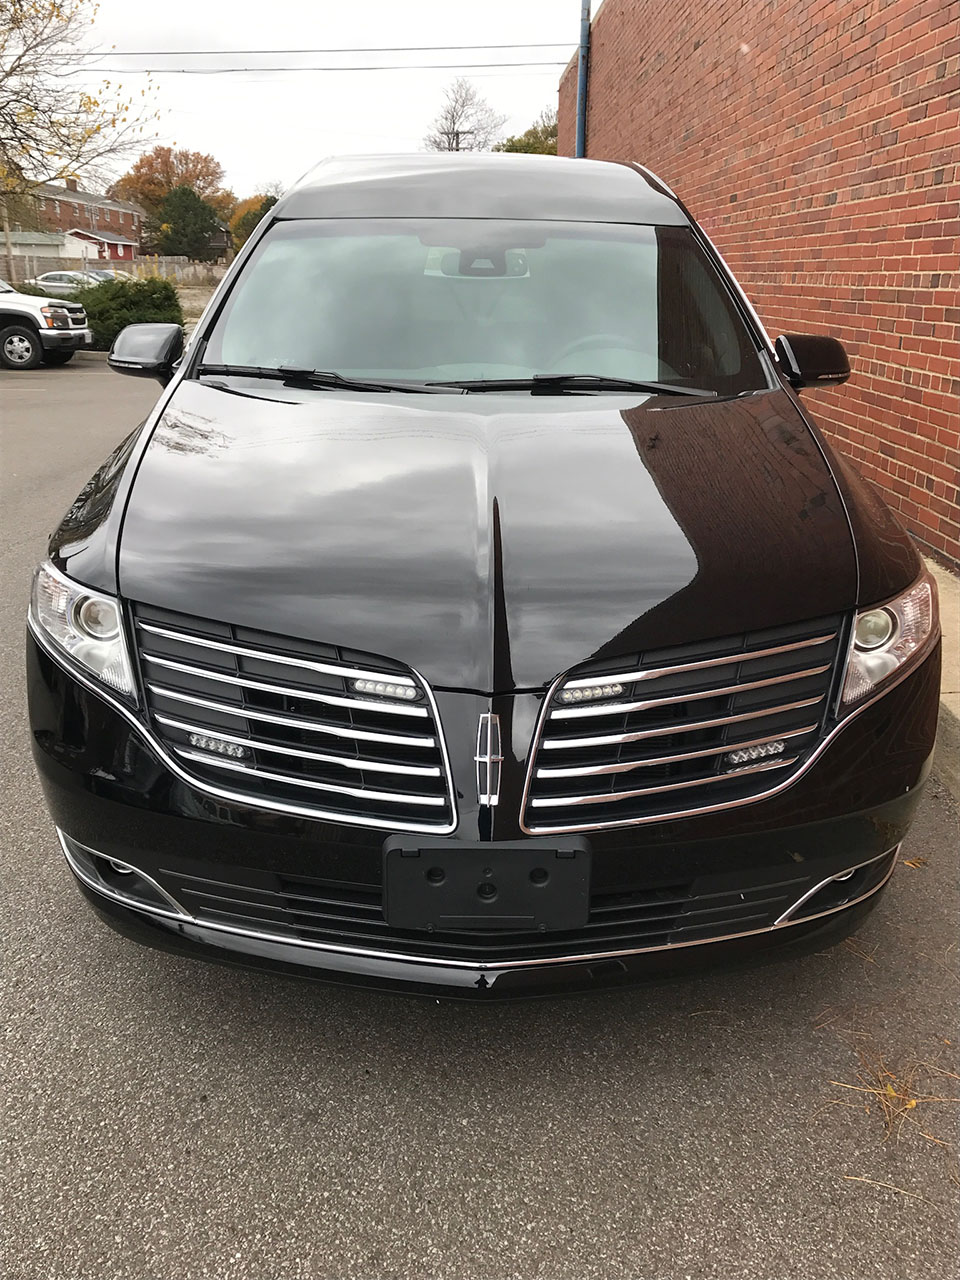 2019 Lincoln Mk Grand Legacy Limited Hearse